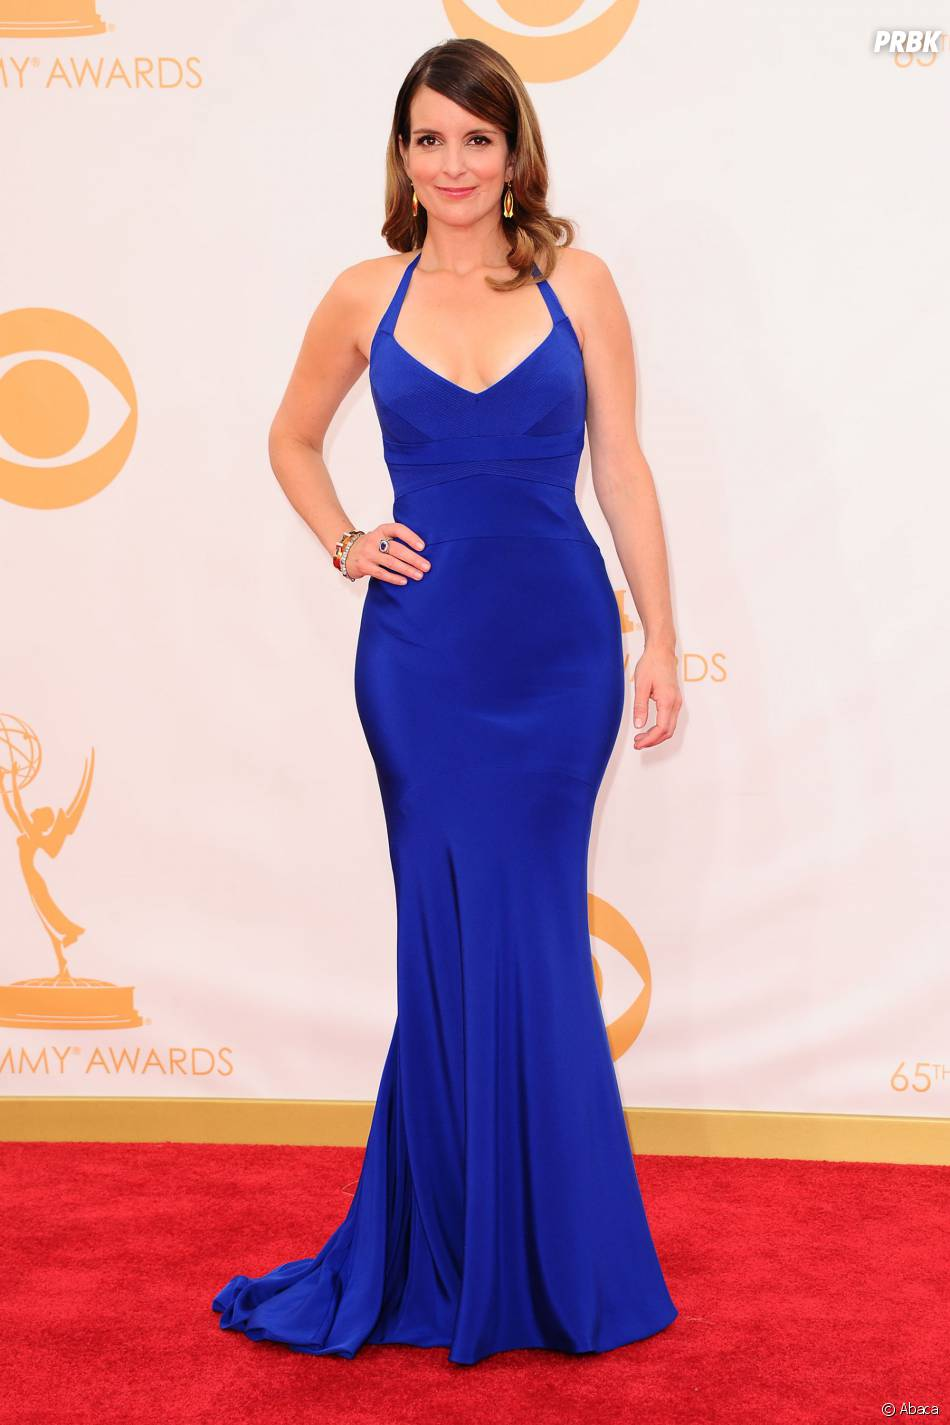 Tina Fey aux Emmy Awards 2013 le 22 septembre 2013 à Los Angeles